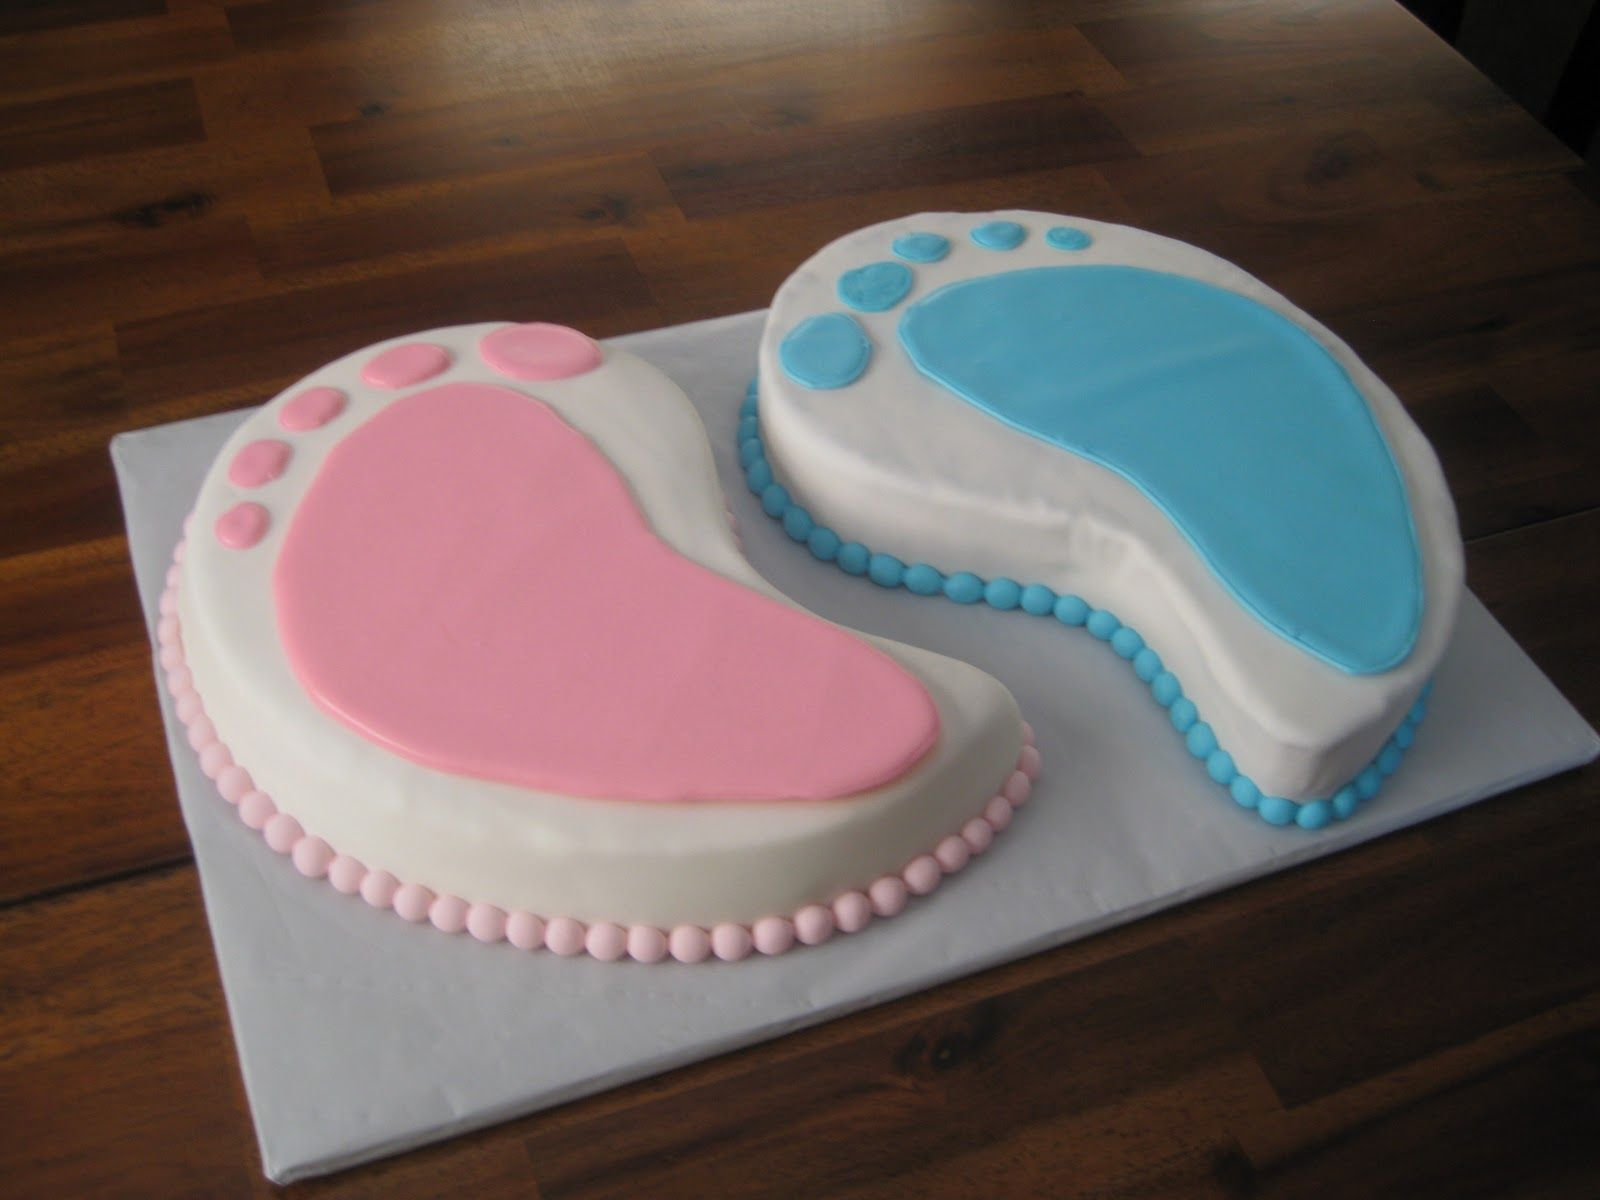 Baby Shower Cake Ideas Girl ~ Ashlynn leigh cakes busy valentine s day weekend twin baby